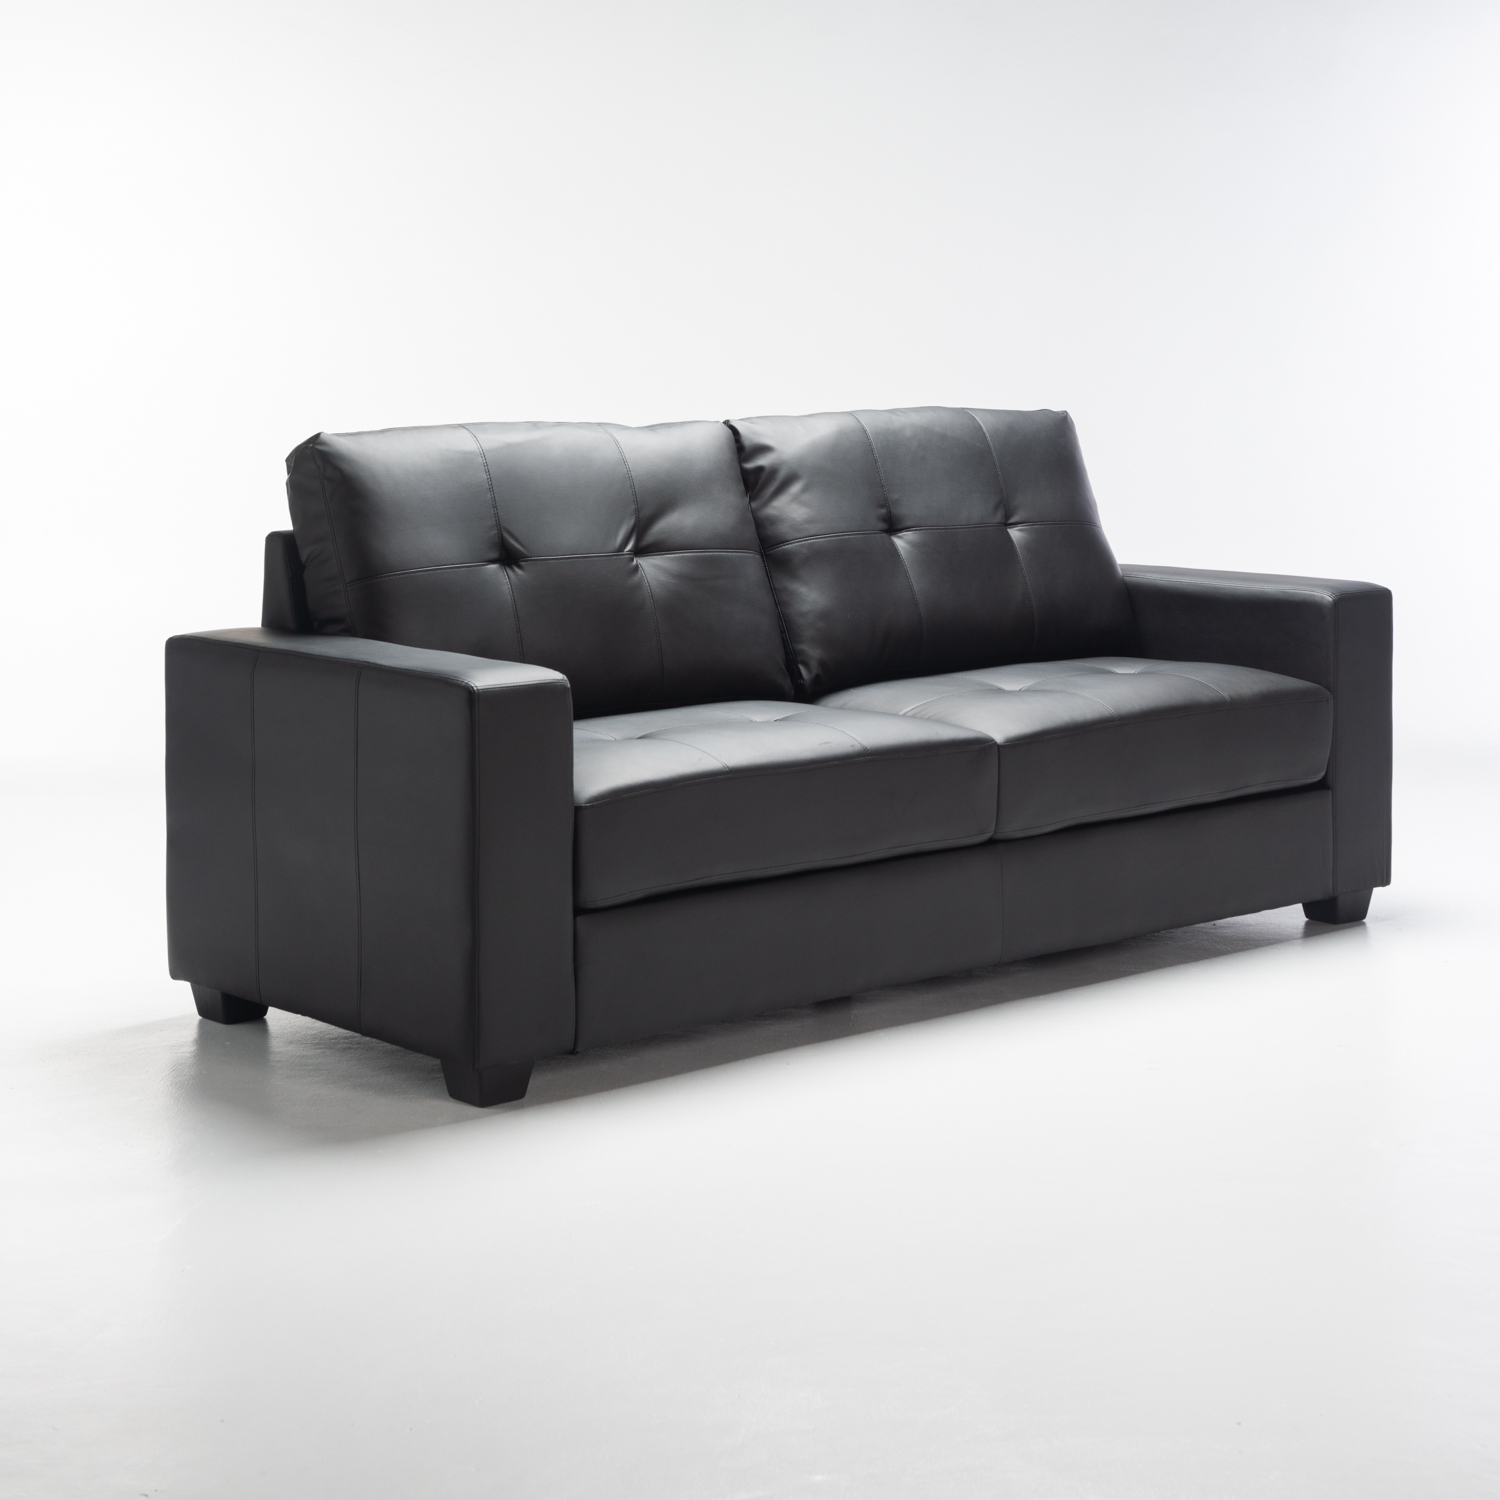 Astra Leather Touch 3 Seater - Black